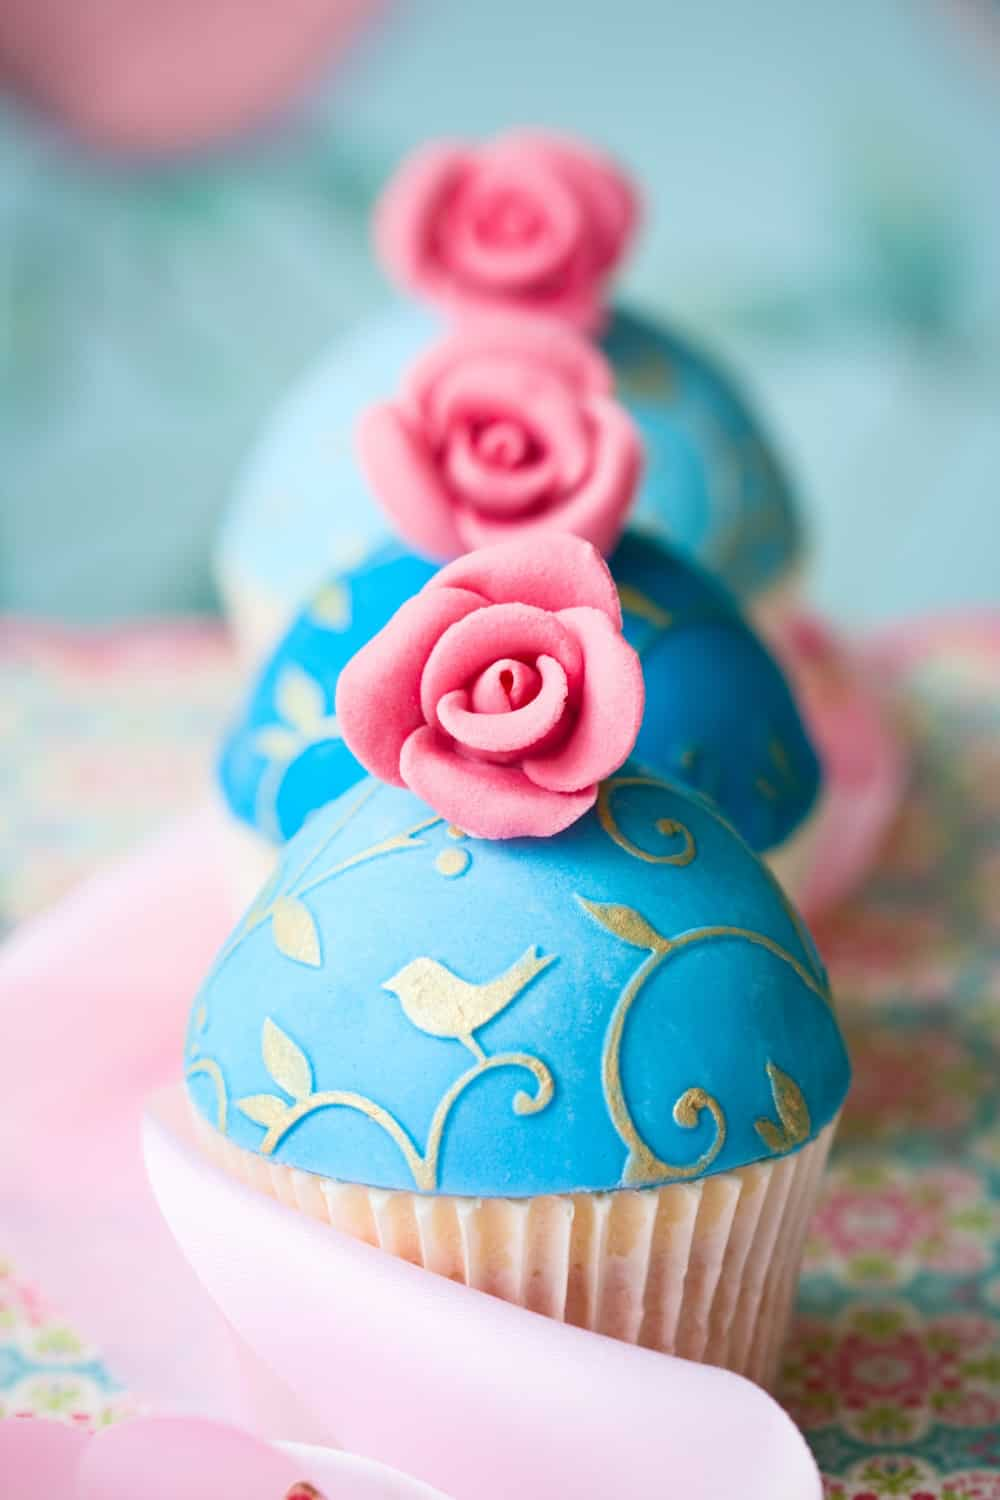 Cupcakes decorated with turquoise fondant and pink sugar roses